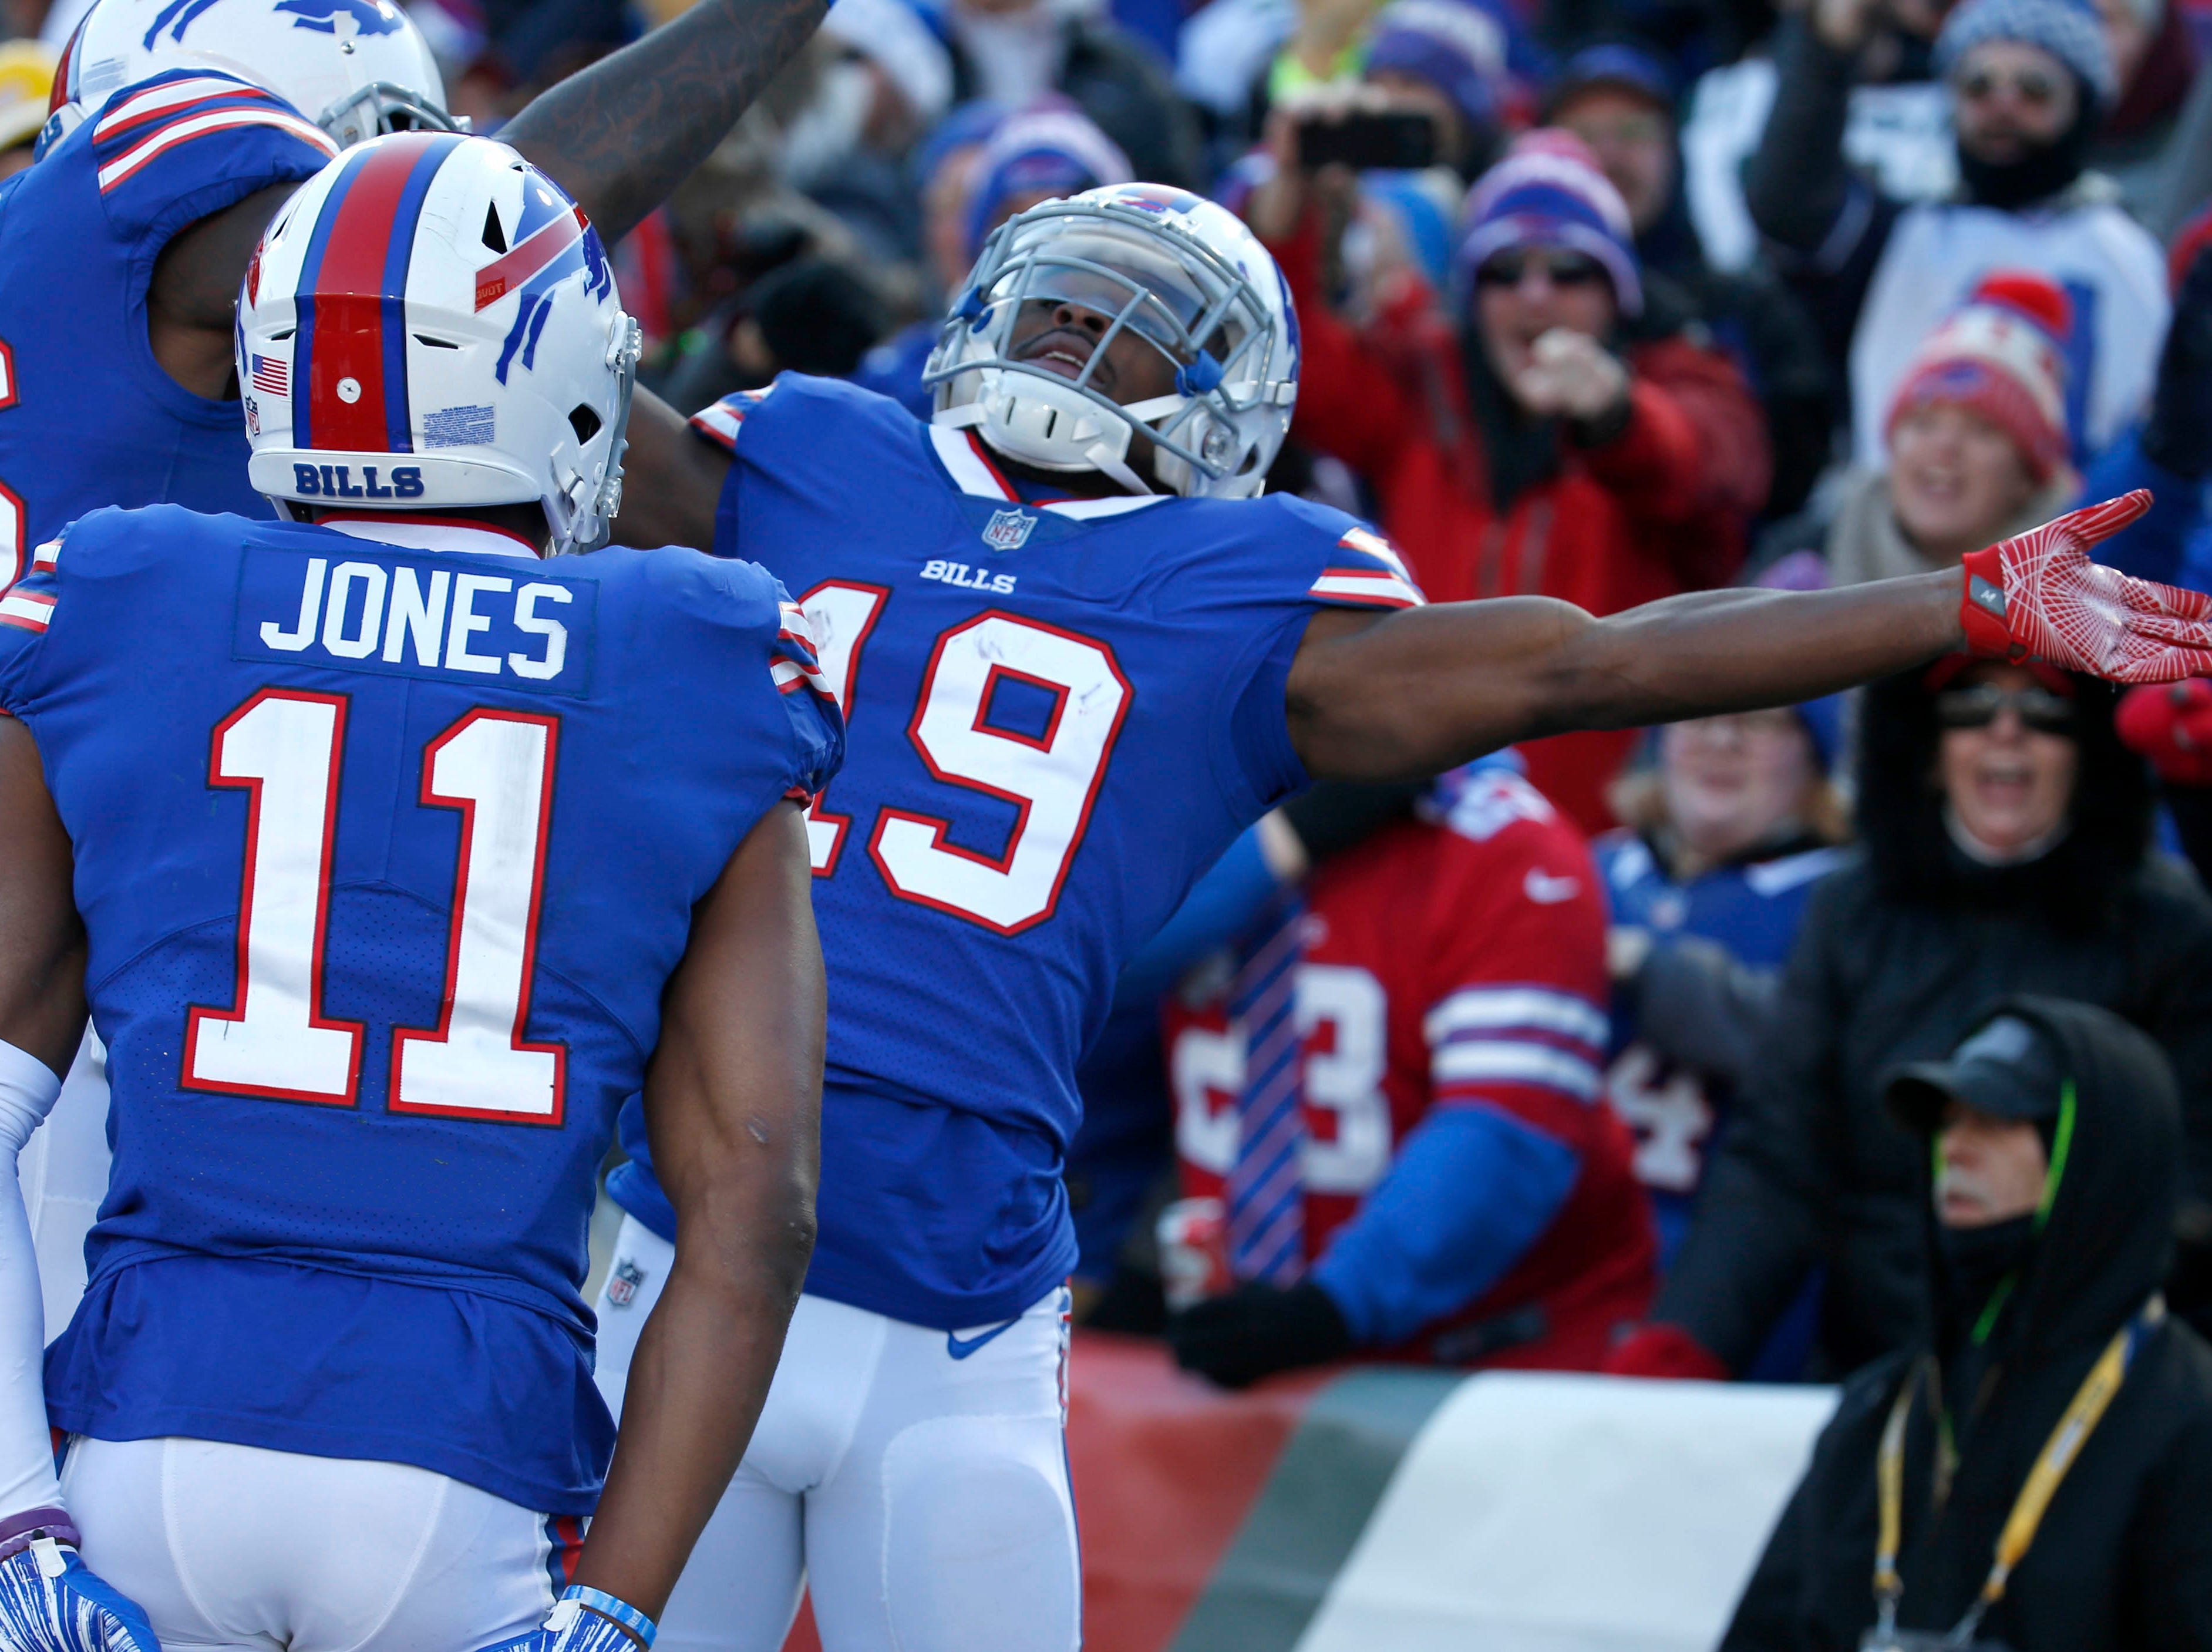 Dec 9, 2018; Orchard Park, NY, USA; Buffalo Bills wide receiver Isaiah McKenzie (19) celebrates his touchdown with wide receiver Robert Foster (16) and wide receiver Zay Jones (11) during the first half against the New York Jets at New Era Field. Mandatory Credit: Timothy T. Ludwig-USA TODAY Sports